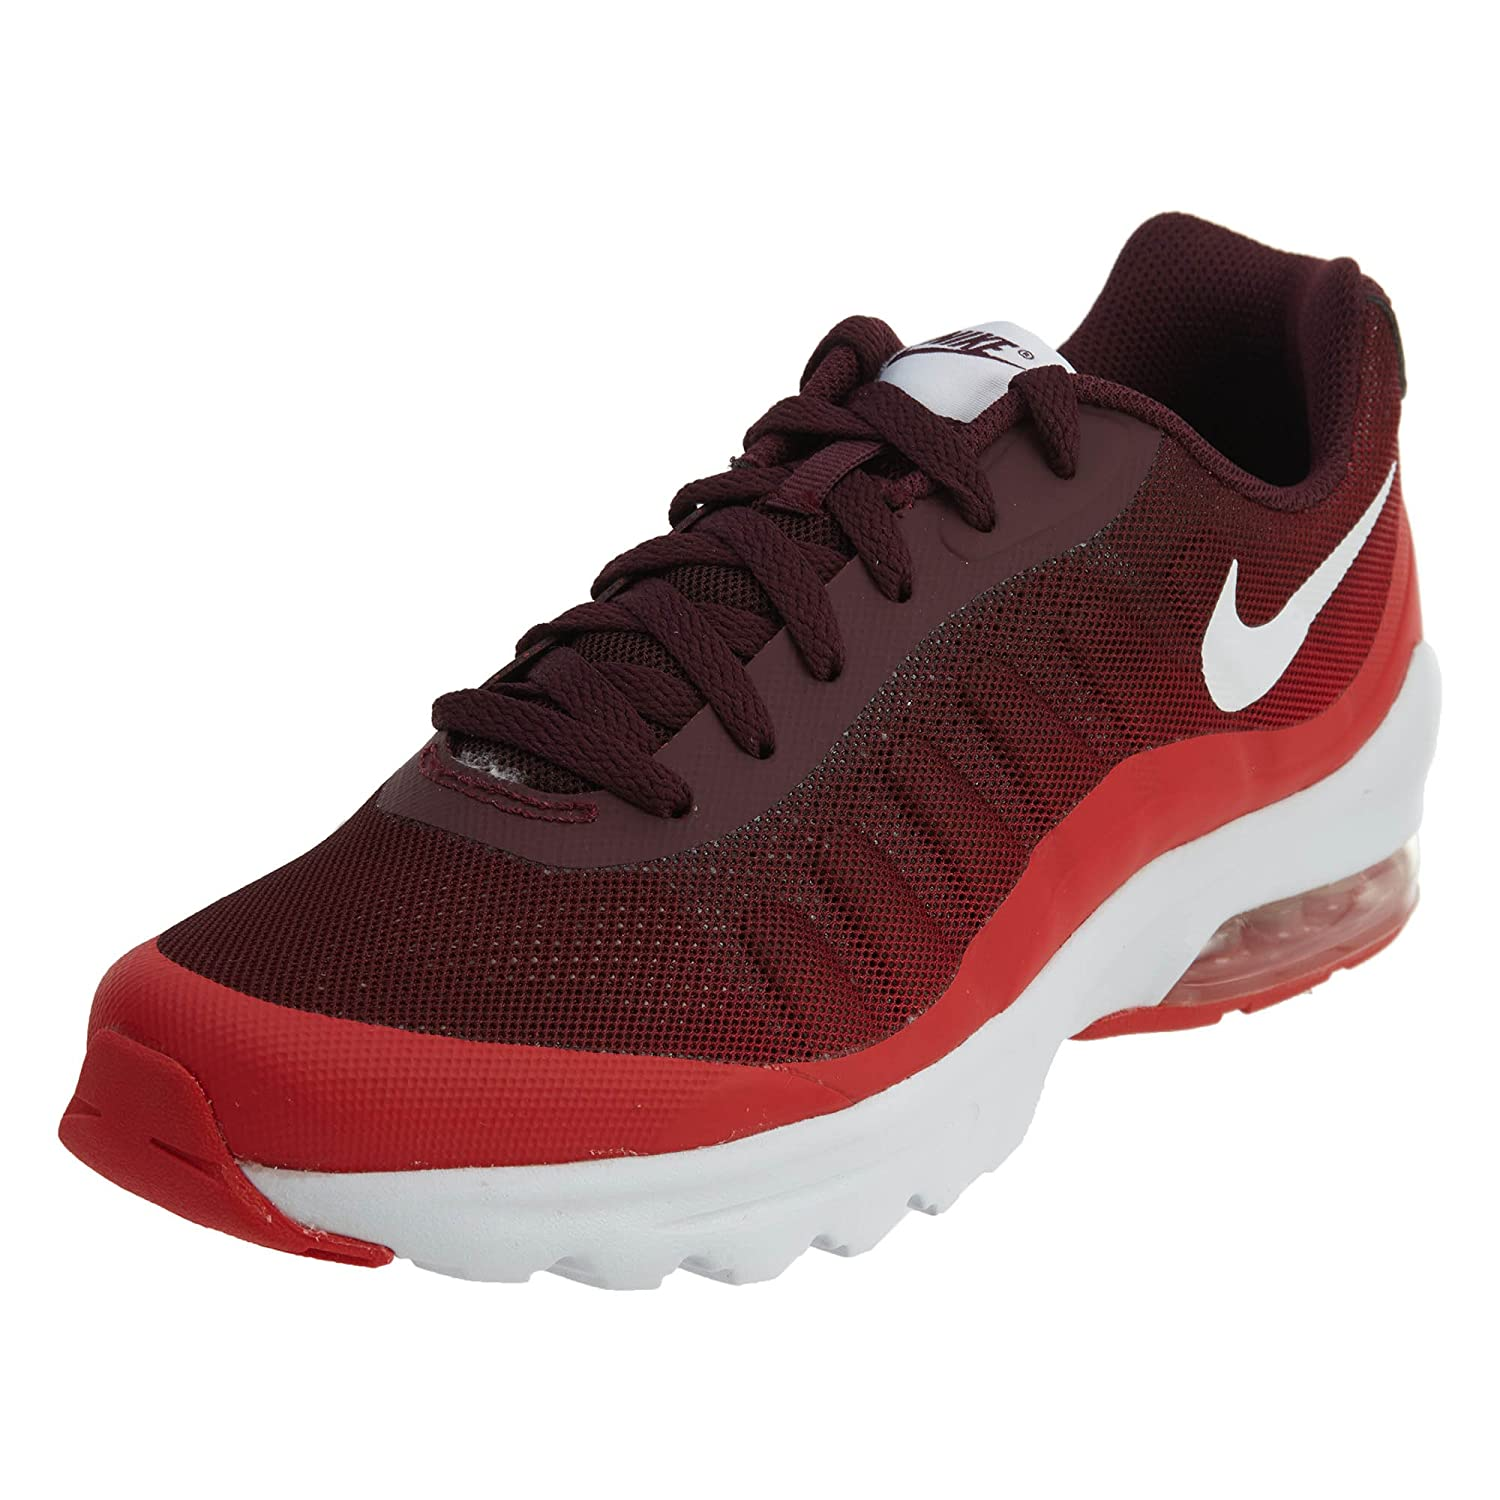 NIKE Men's Air Max Invigor Print Running Shoes B01IODME0I 7.5 D(M) US|Night Maroon/White/Action Red